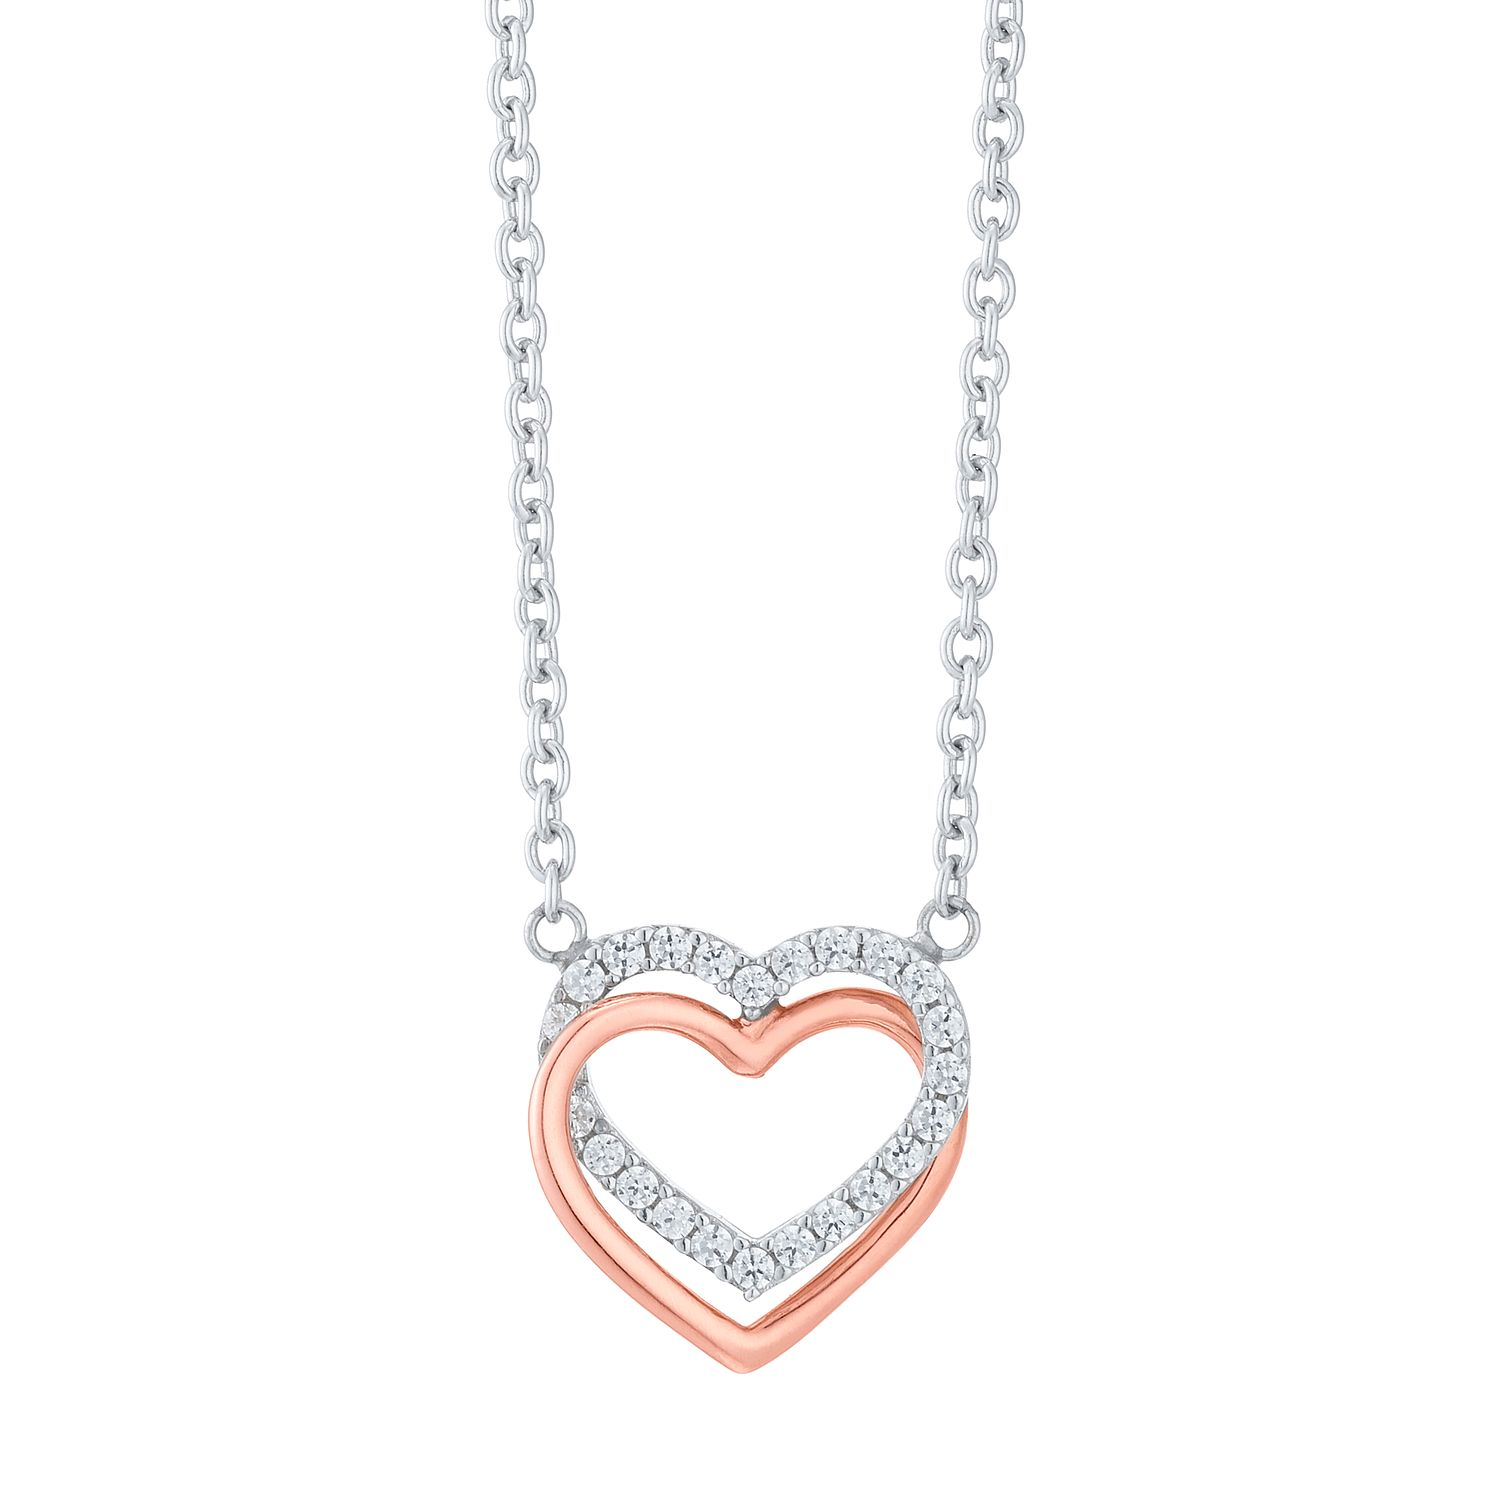 9ct Rose Gold & Silver Cubic Zirconia Linked Heart Necklace - Product number 6381715